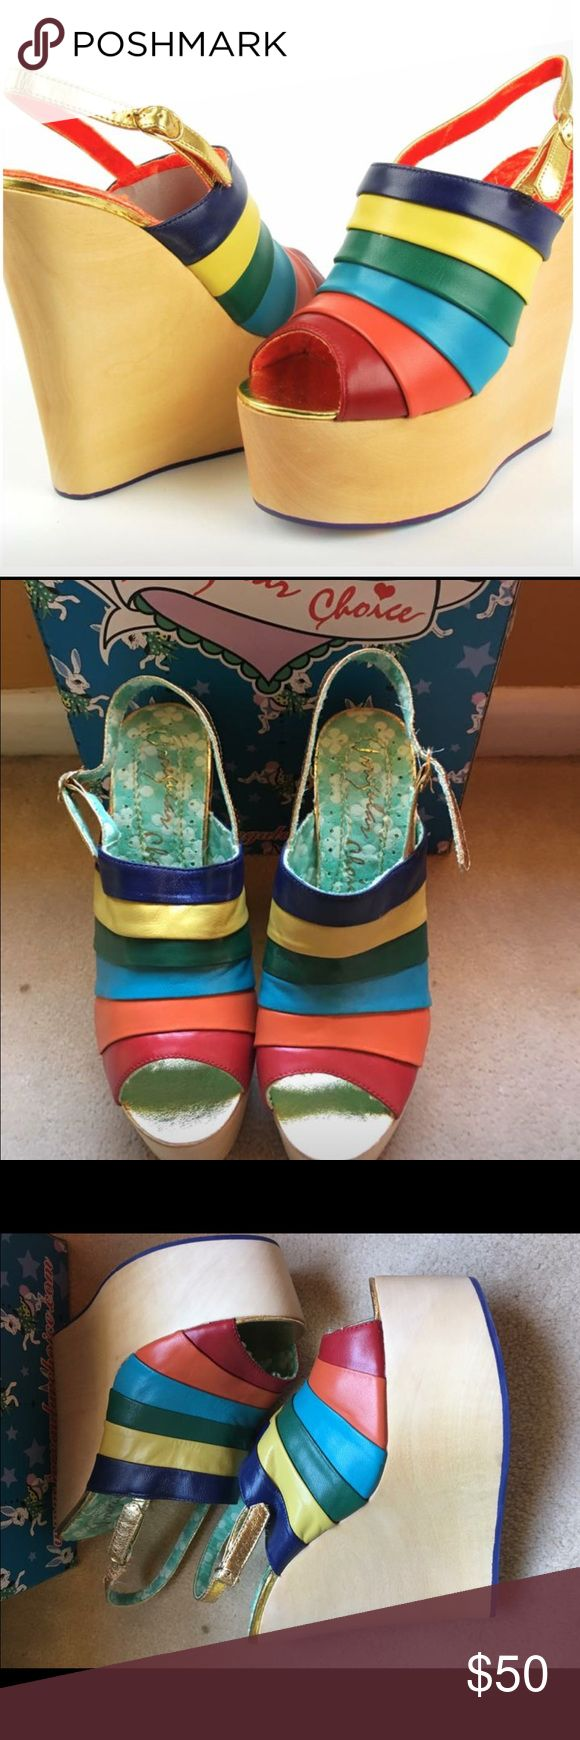 "{Anthro} Irregular Choice Chica Chola Slingback Irregular Choice Chica Chola Slingback Size 6.5, 8.5, 9, 10 available   Leather Synthetic sole Heel 4.5"" Leather upper Retail $298  Brand new with shoebox Anthropologie Shoes Platforms"